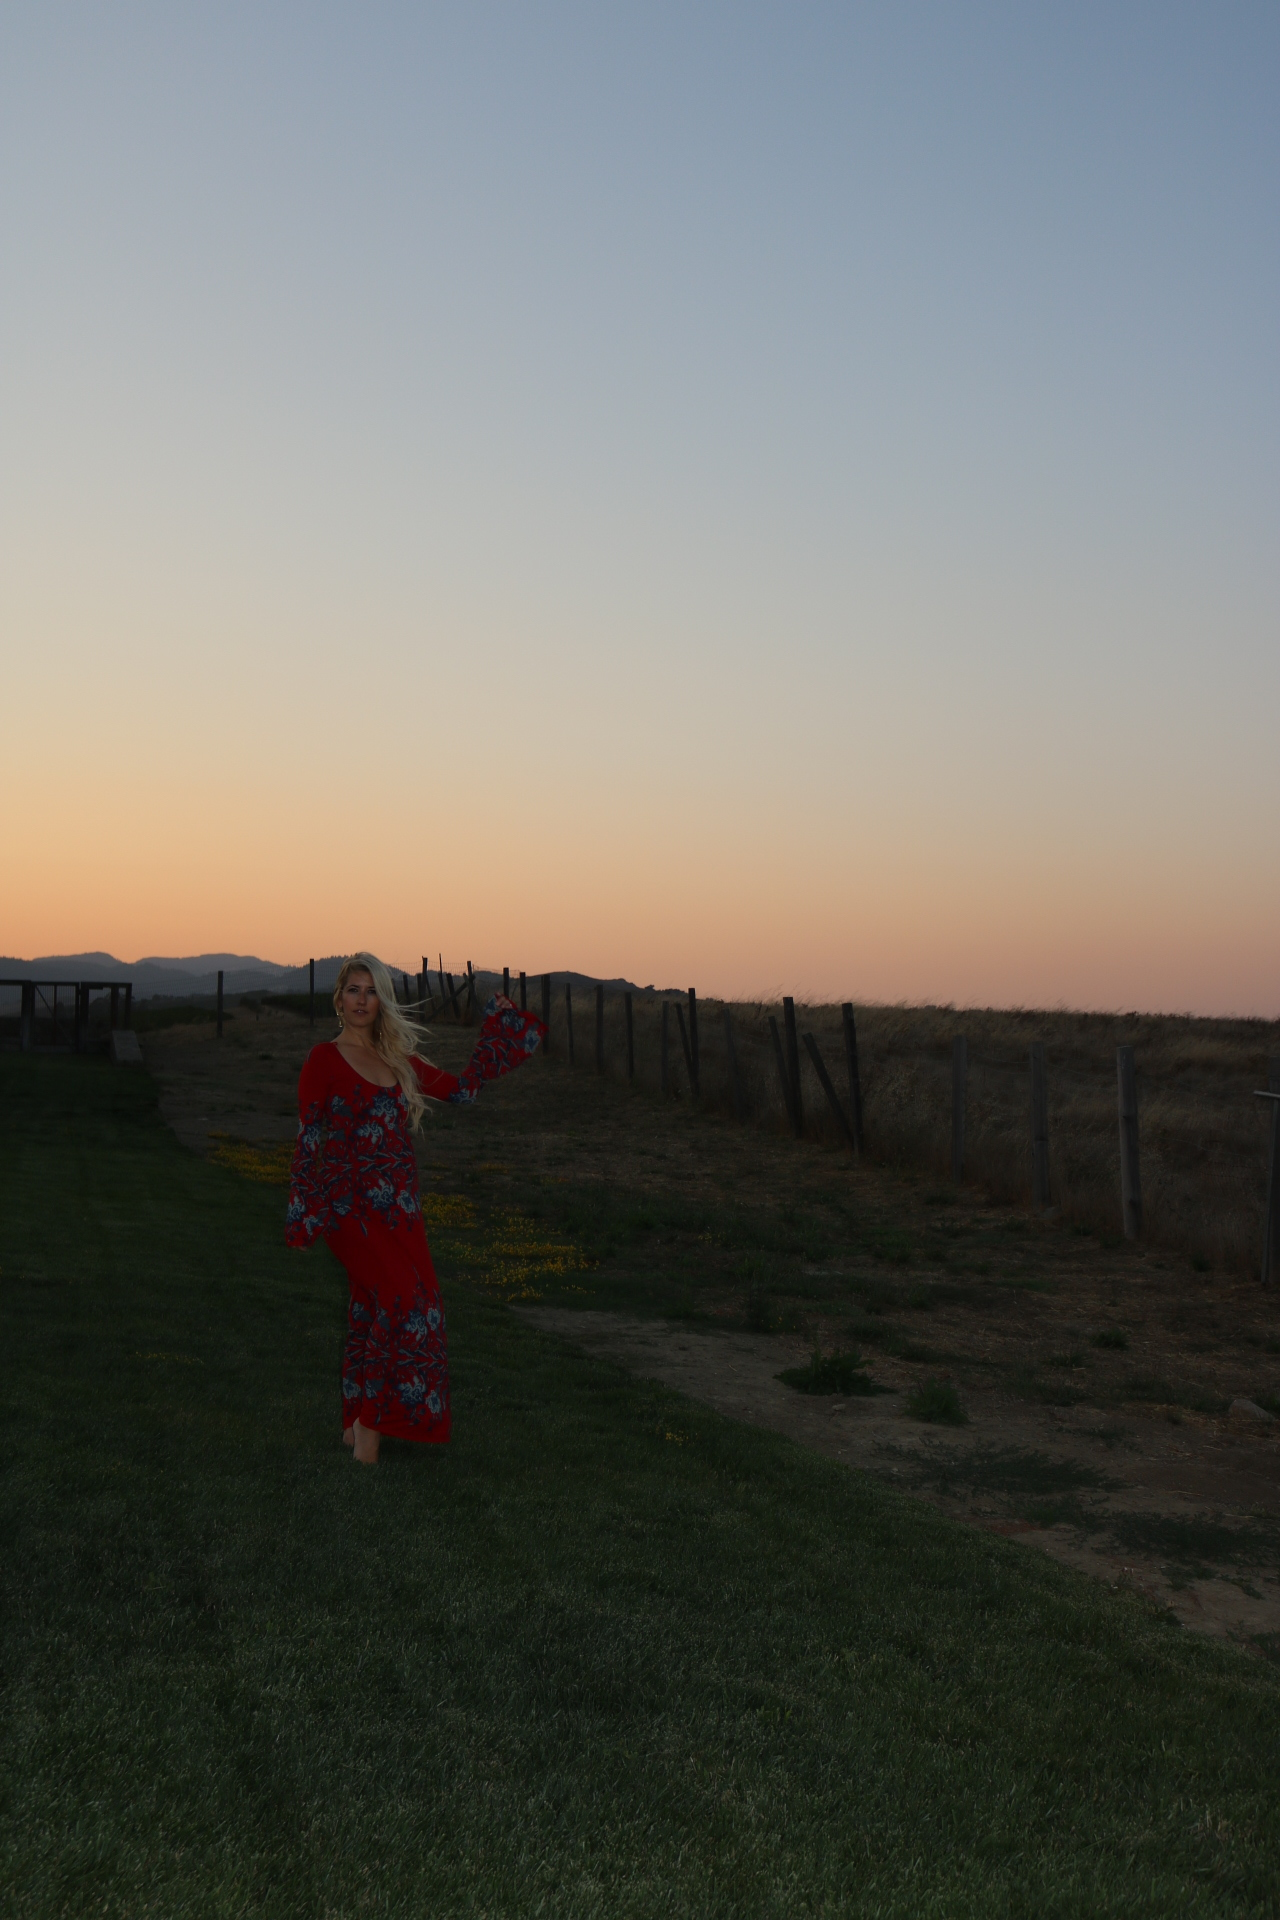 Catching the stunning sunset before dinner at FARM.